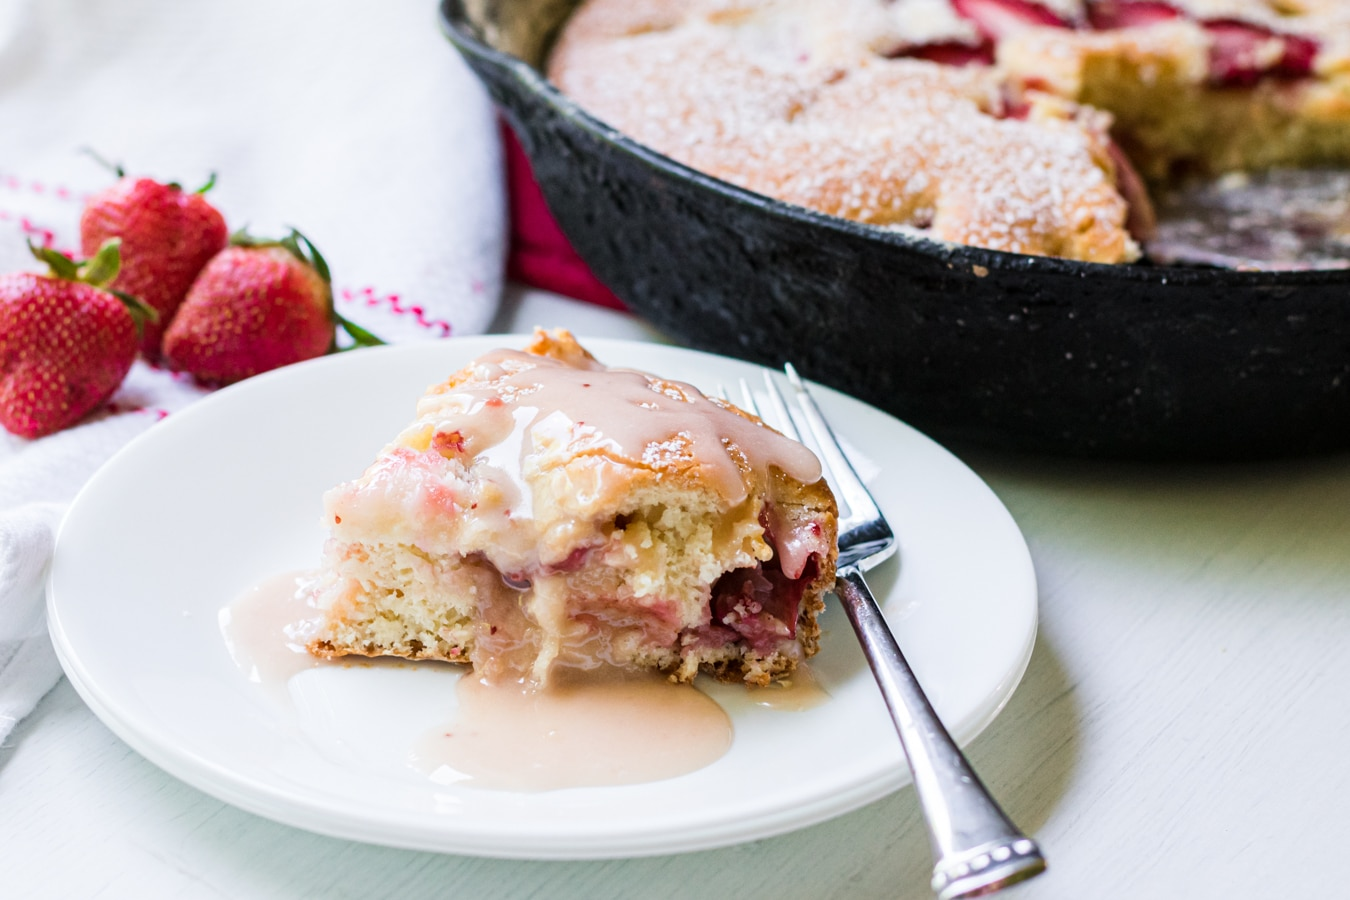 slice of cake in front of Strawberry Skillet Cake